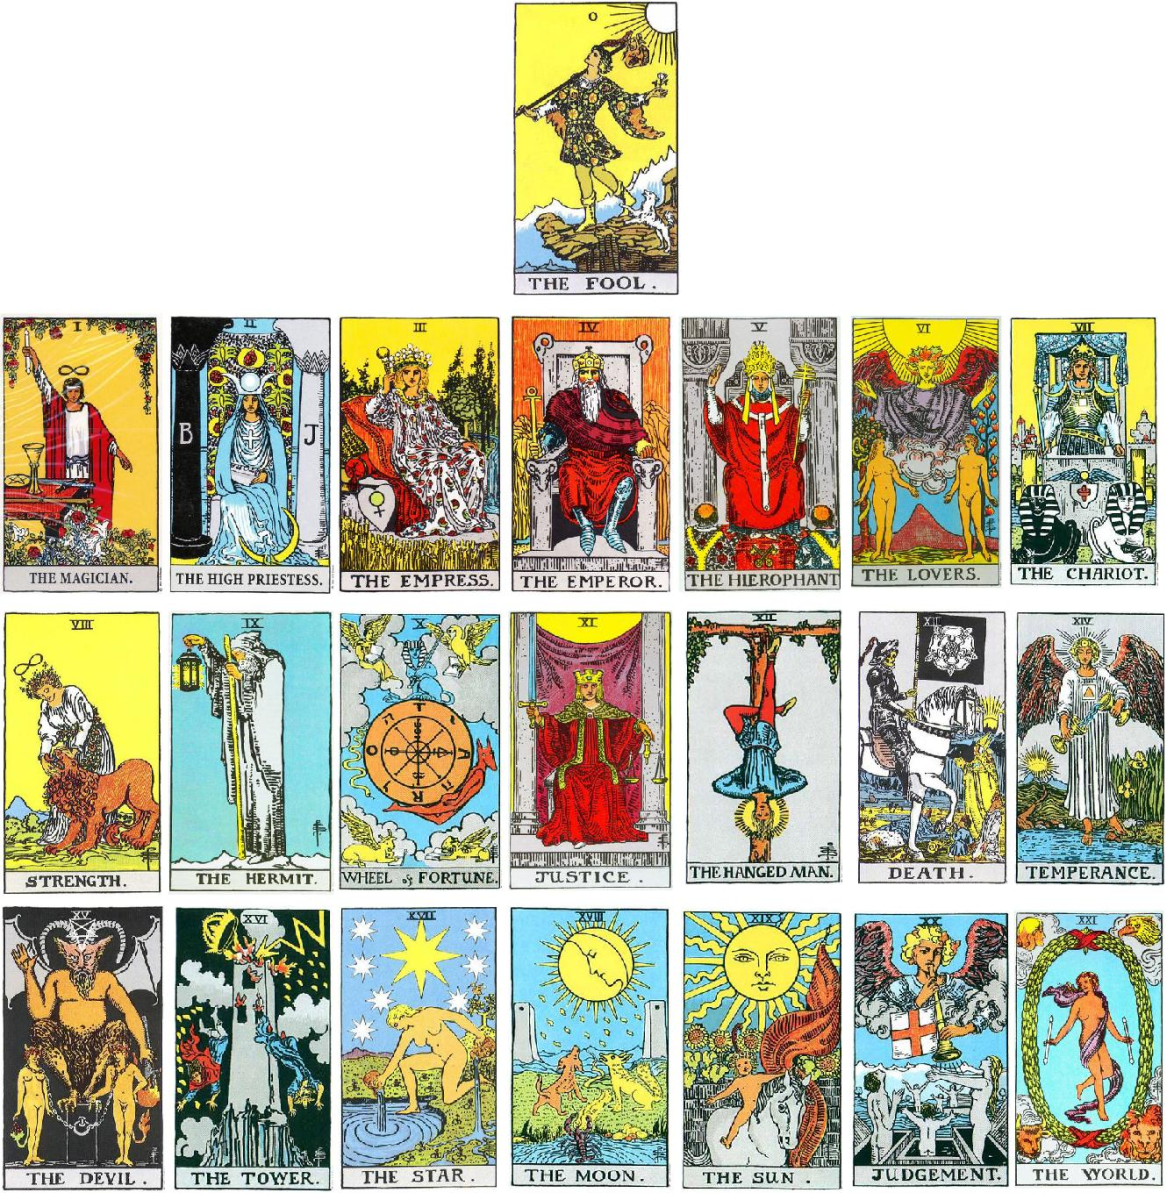 The Major Arcana (Soul Cards) painted by Pamela Coleman Smith.